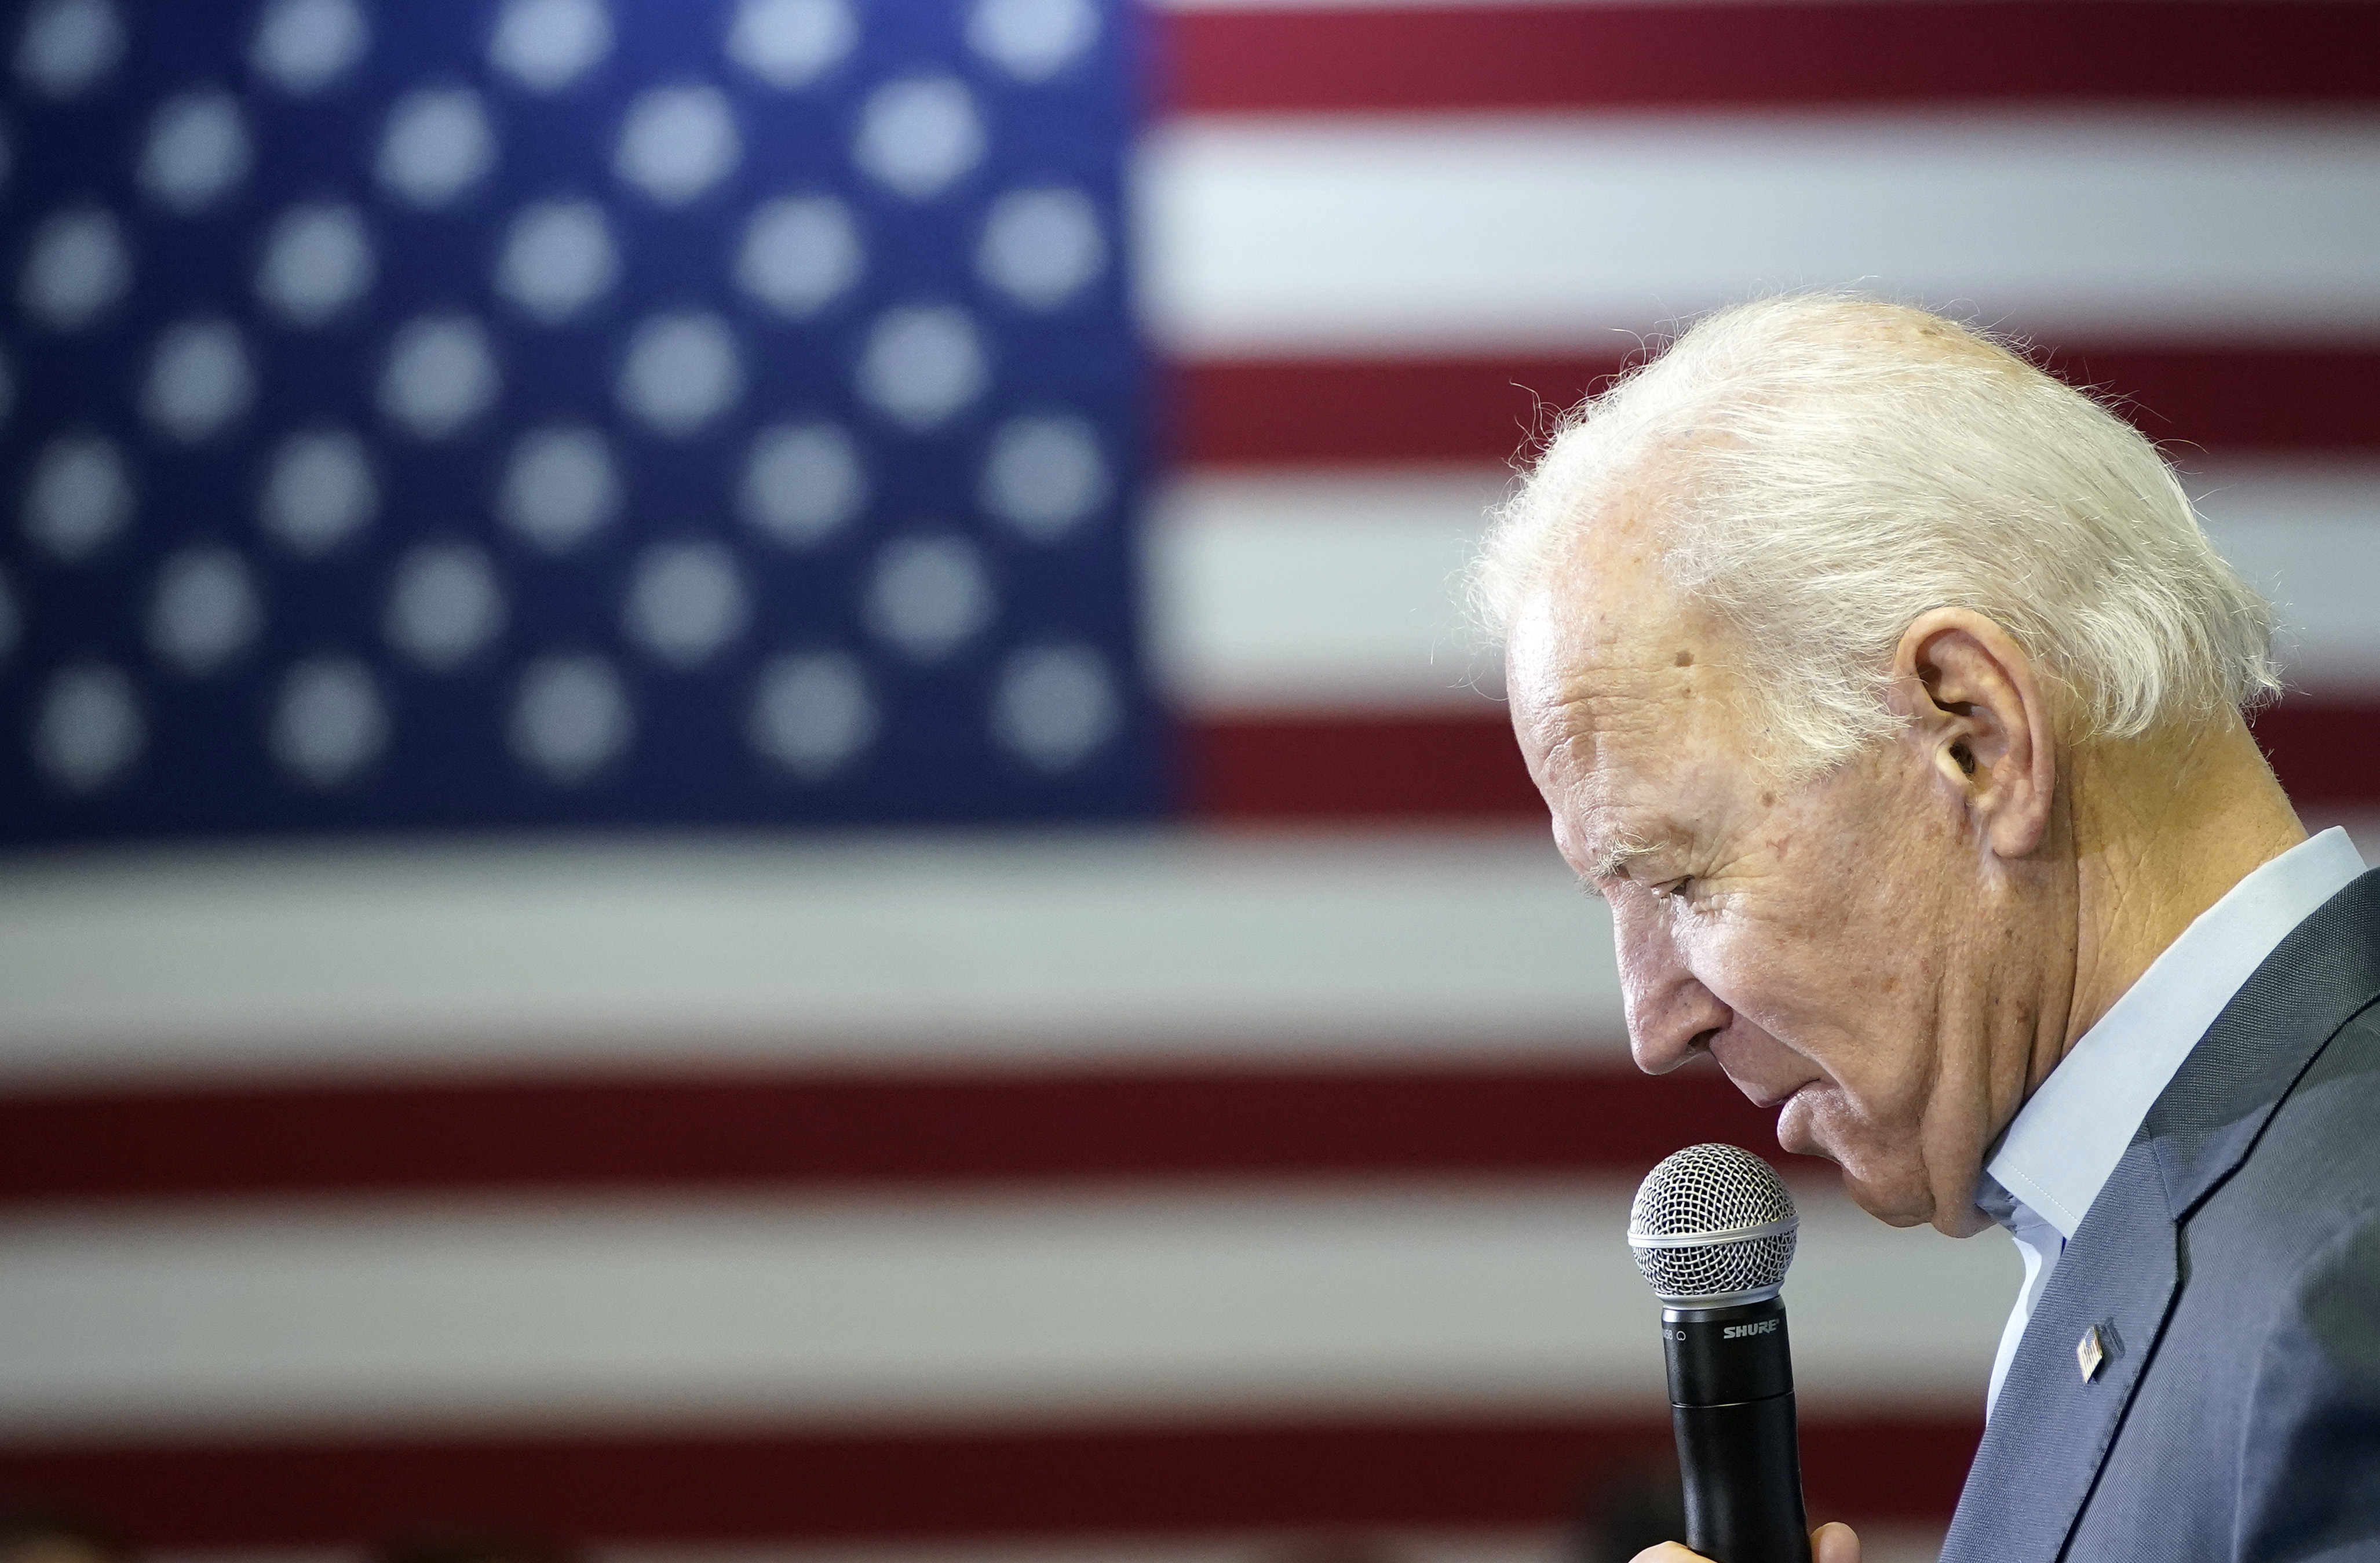 Democratic presidential candidate former U.S. Vice president Joe Biden campaigns at a VFW Hall December 7, 2019 in Oelwein, Iowa. Former Democratic presidential candidate John Kerry recently announced his endorsement of Biden with the Iowa caucuses less than two months away. (Photo by Win McNamee/Getty Images)